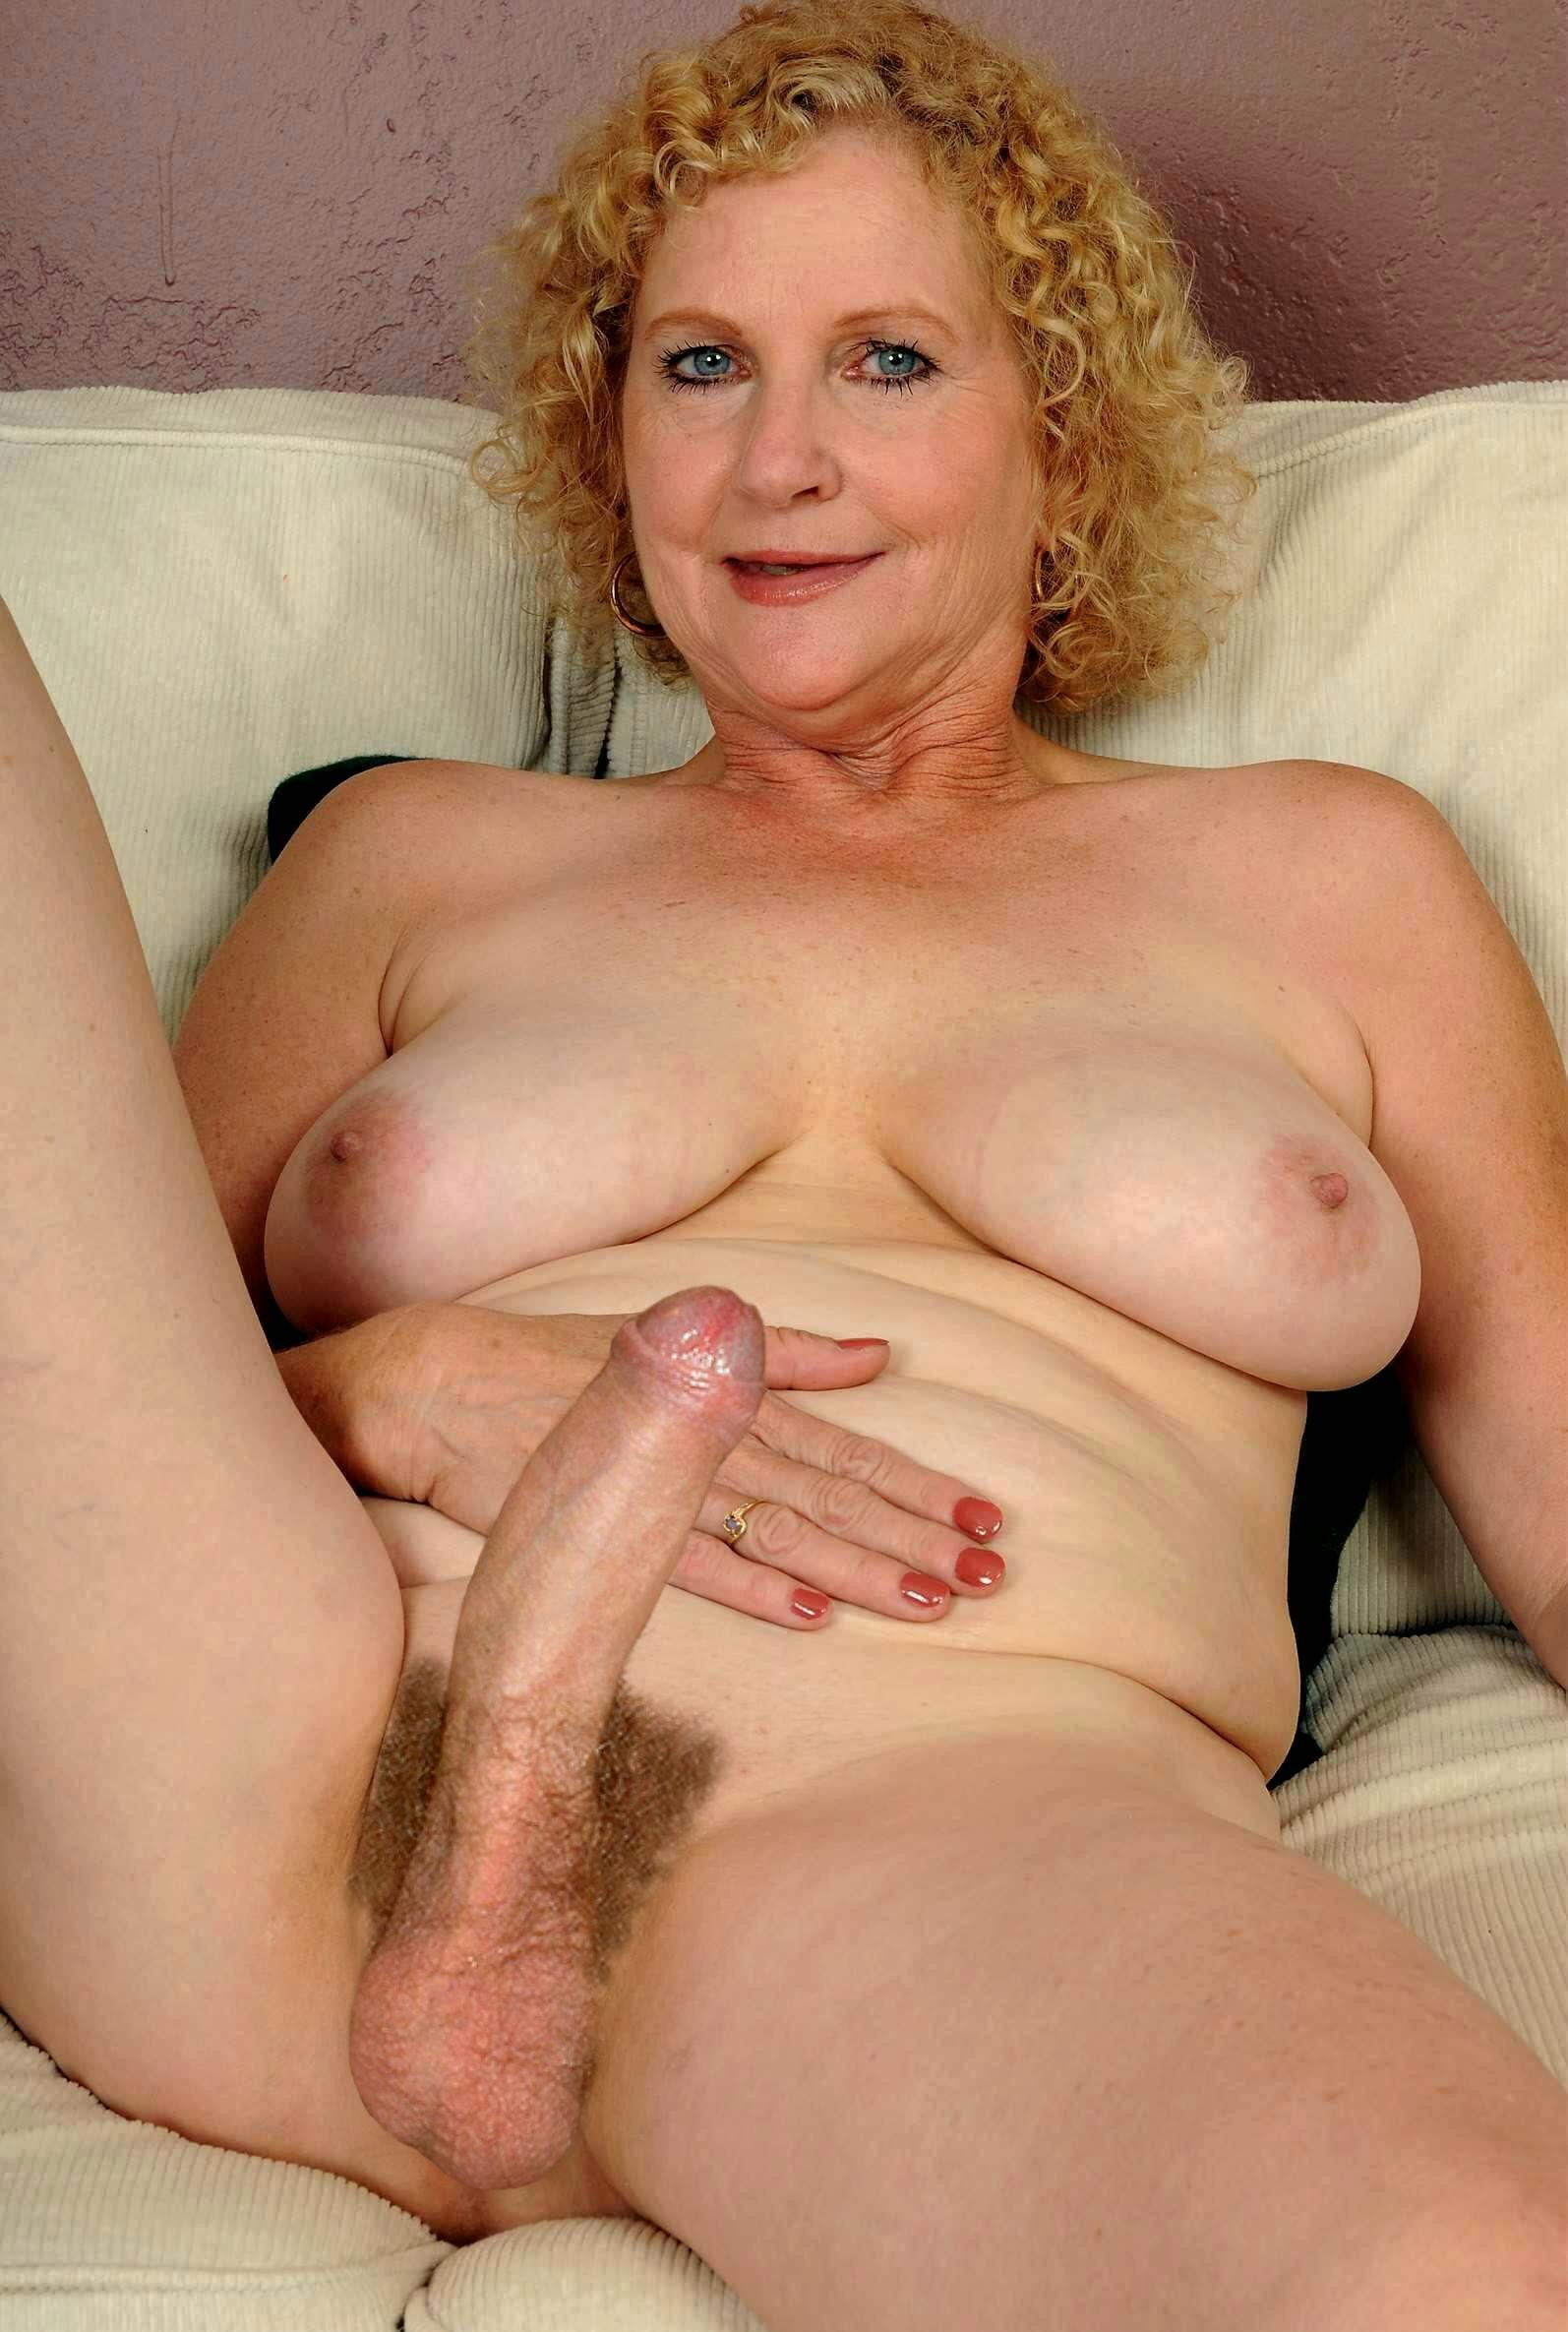 Huge women dicks taking